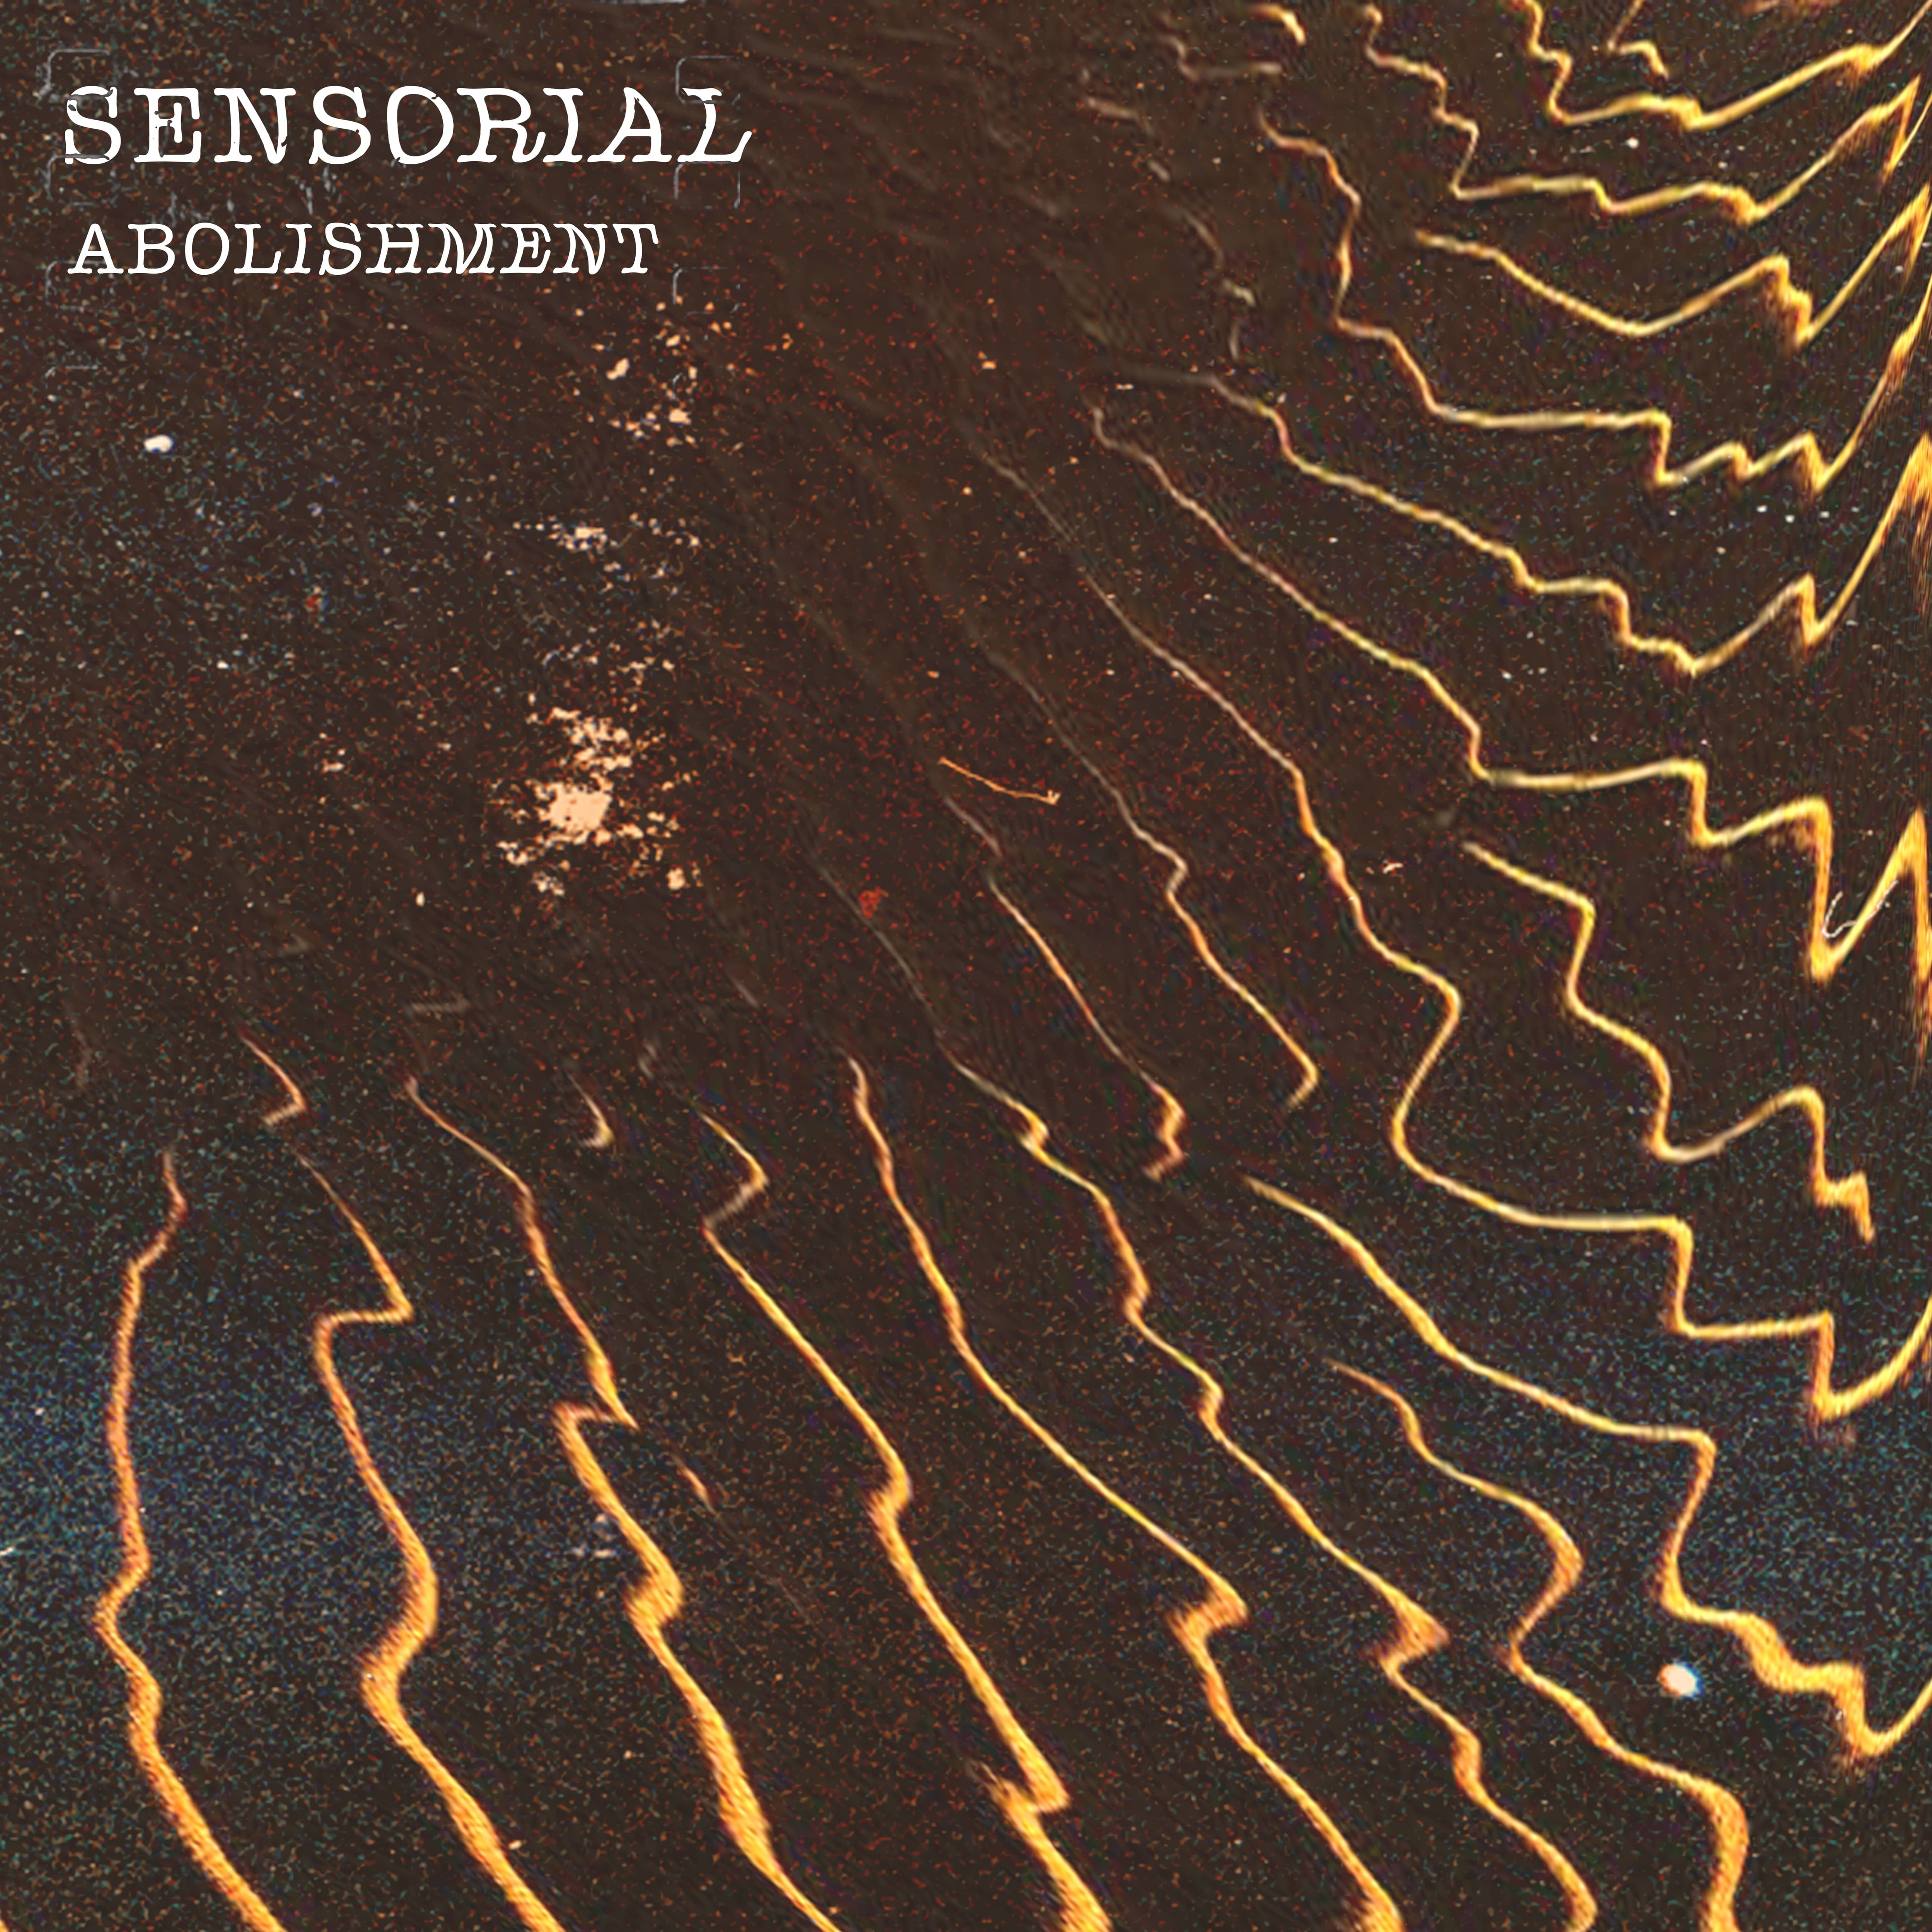 Sensorial abolishment resized